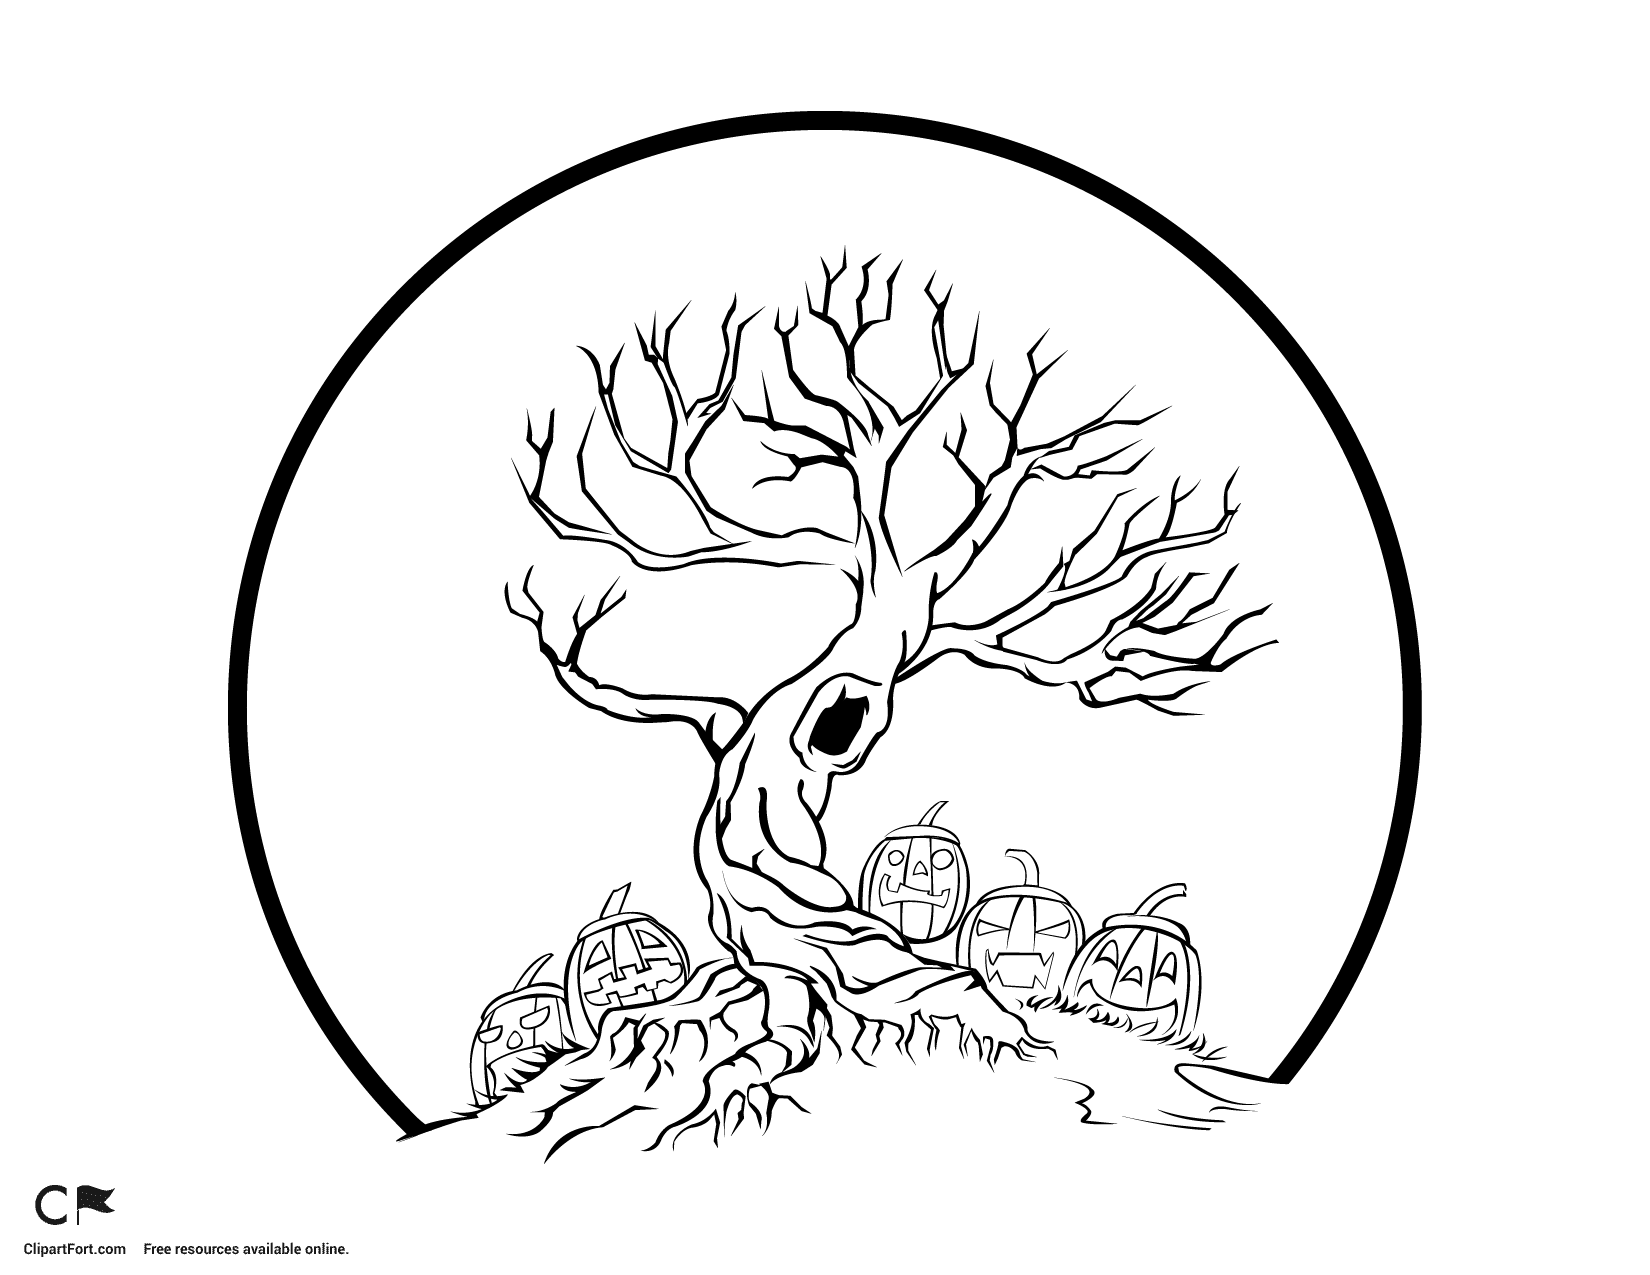 1650x1275 Scary Halloween Tree Coloring Pages Preschool For Pretty Draw